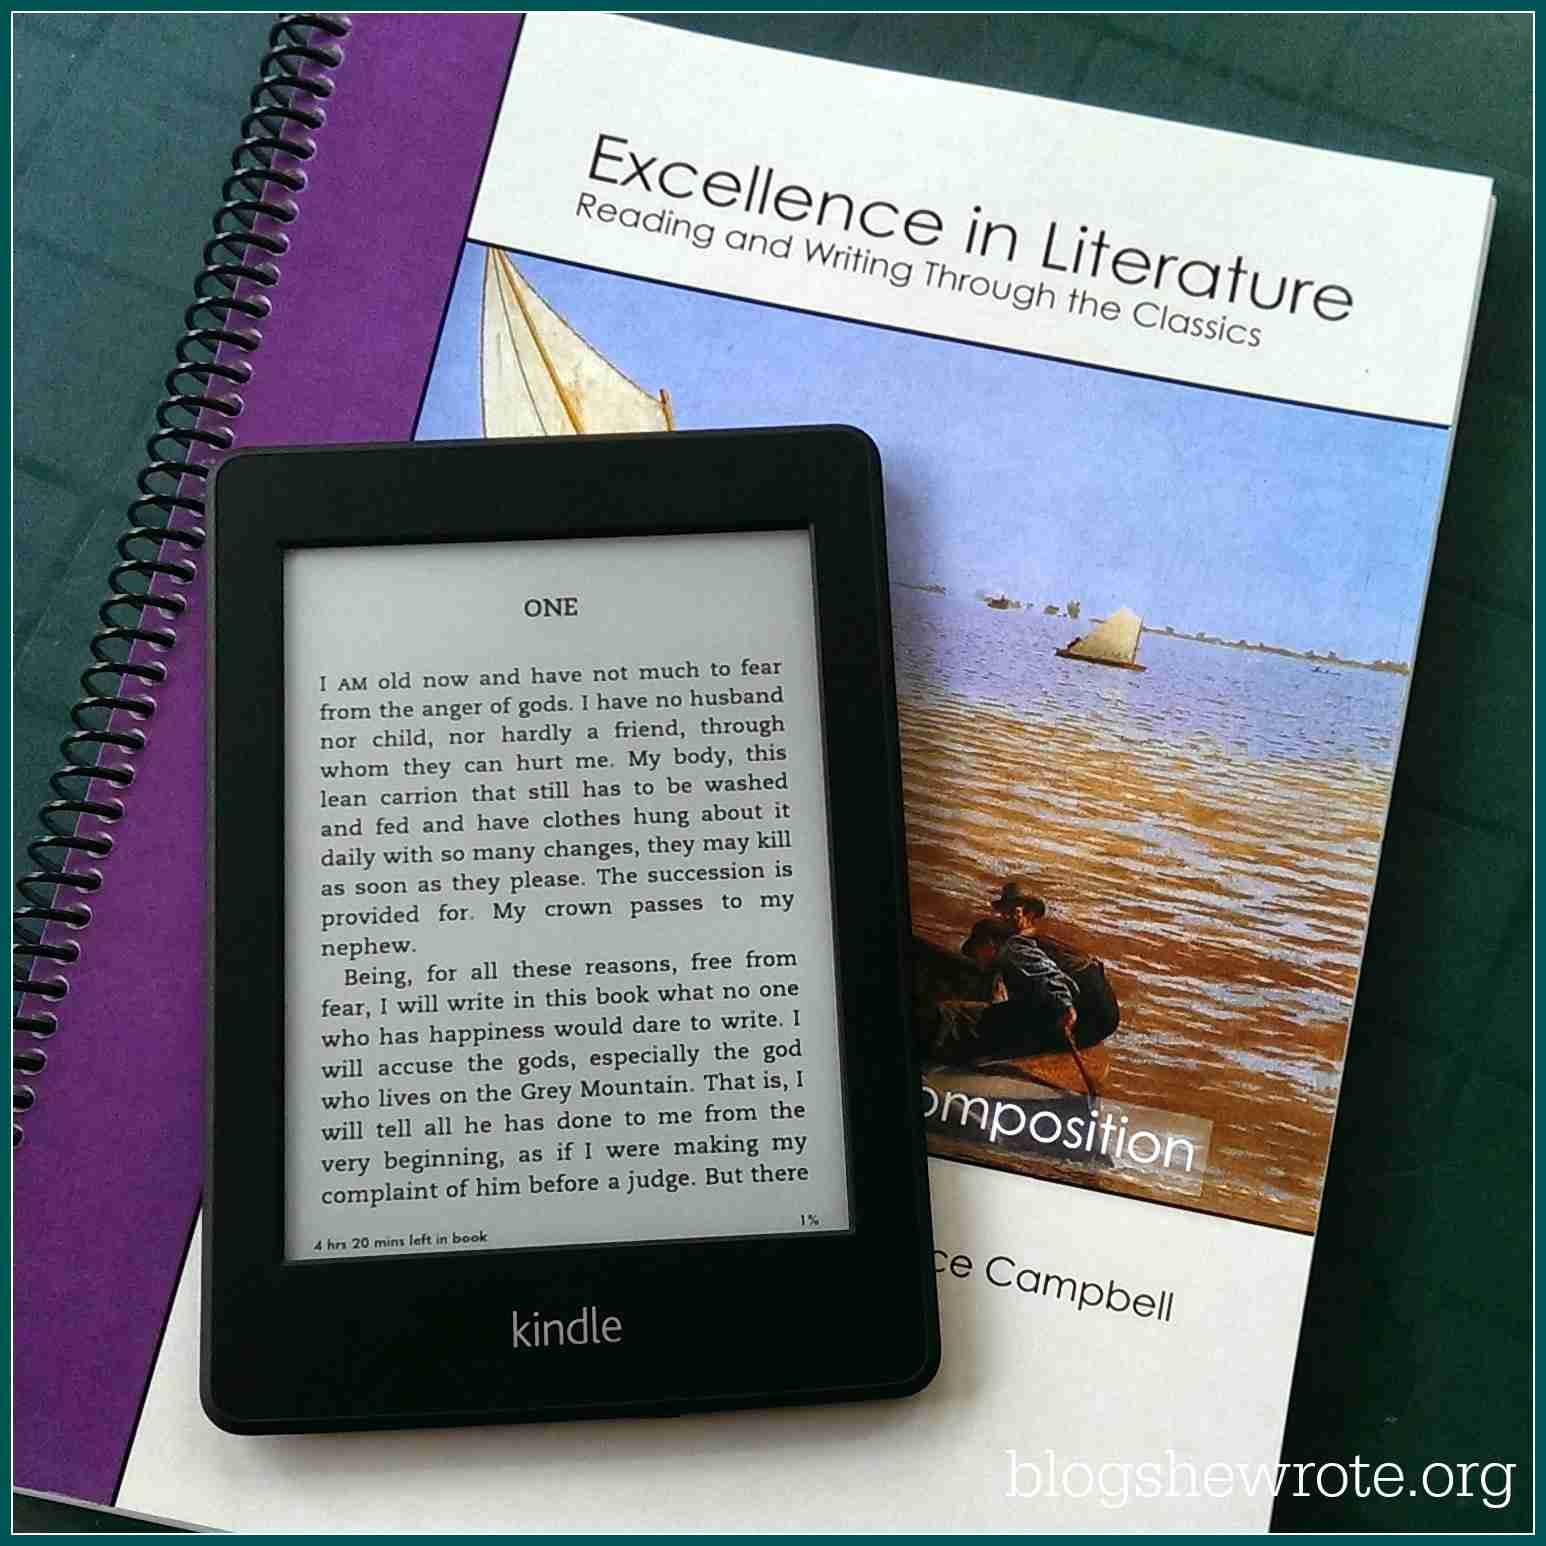 Blog, She Wrote: How to Use a Kindle in Your Homeschool